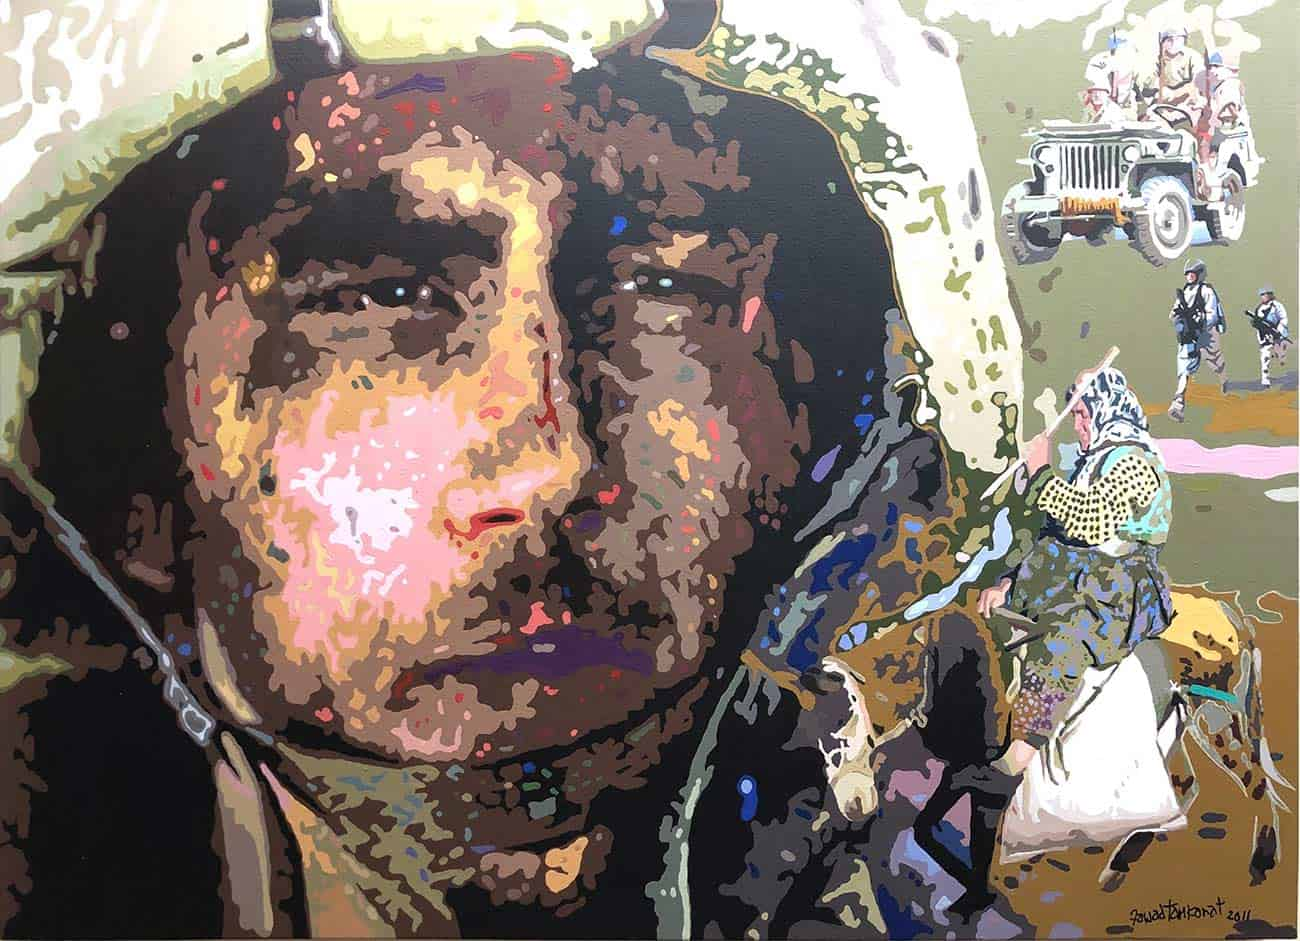 soldier-acrylic-on-canvas-36×48-inches-2011-min